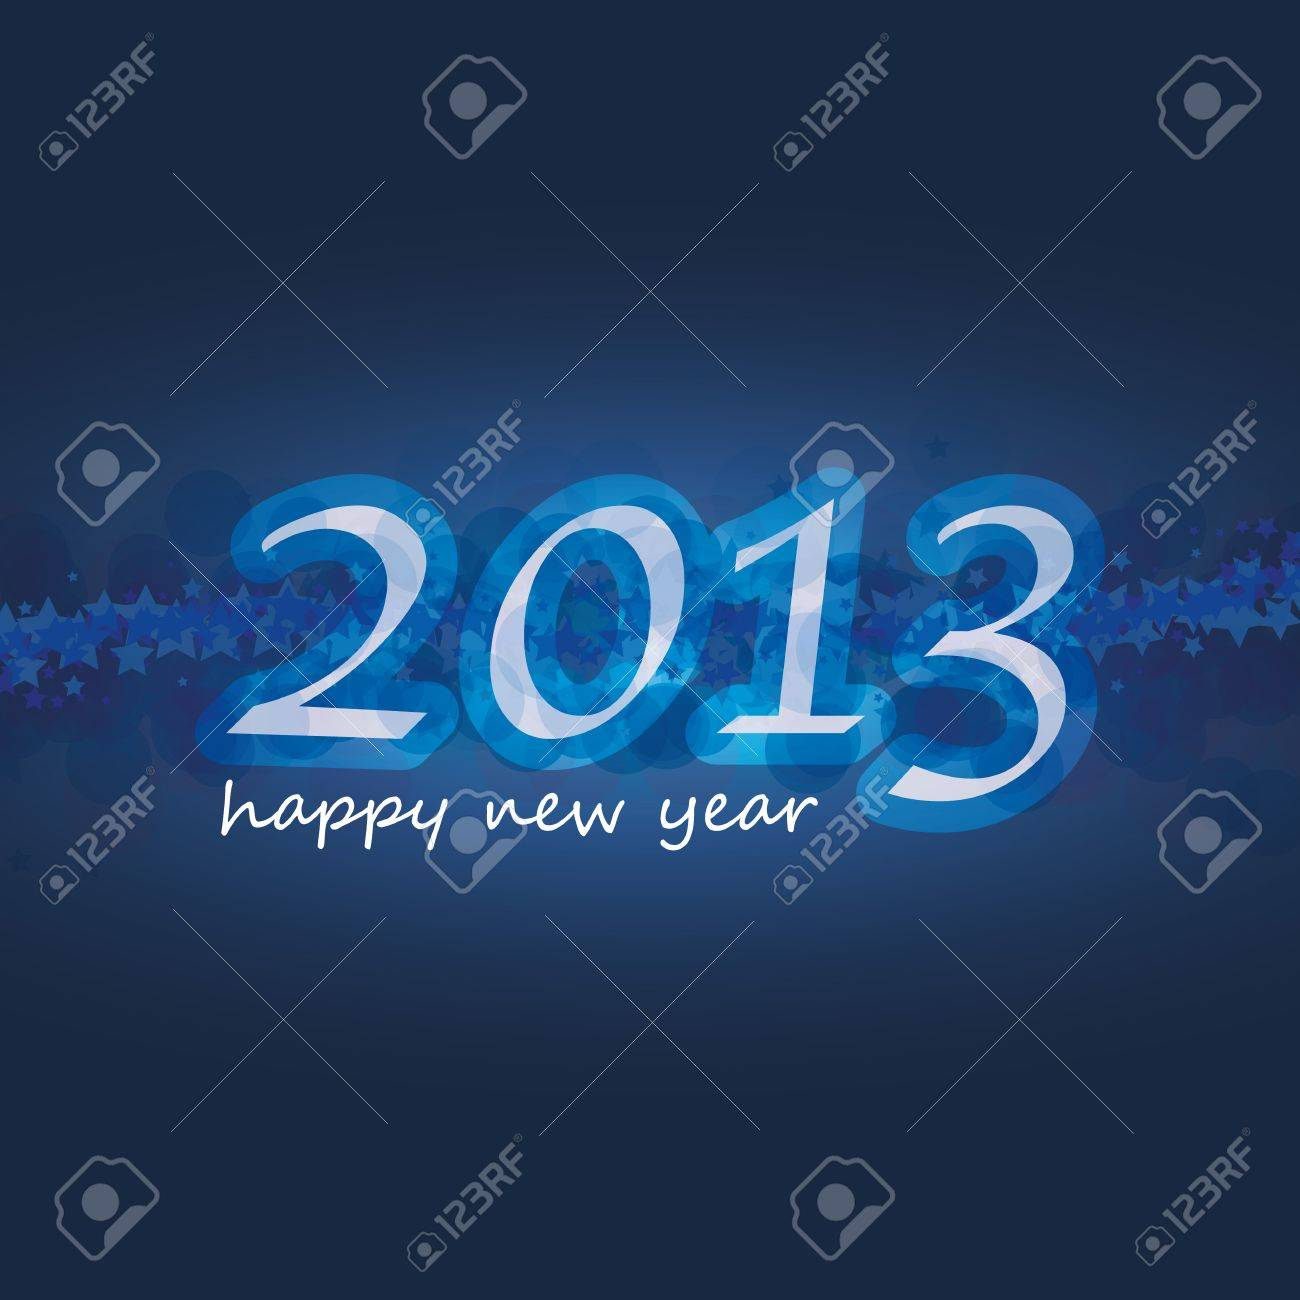 New Year Card Background Stock Vector - 16853417